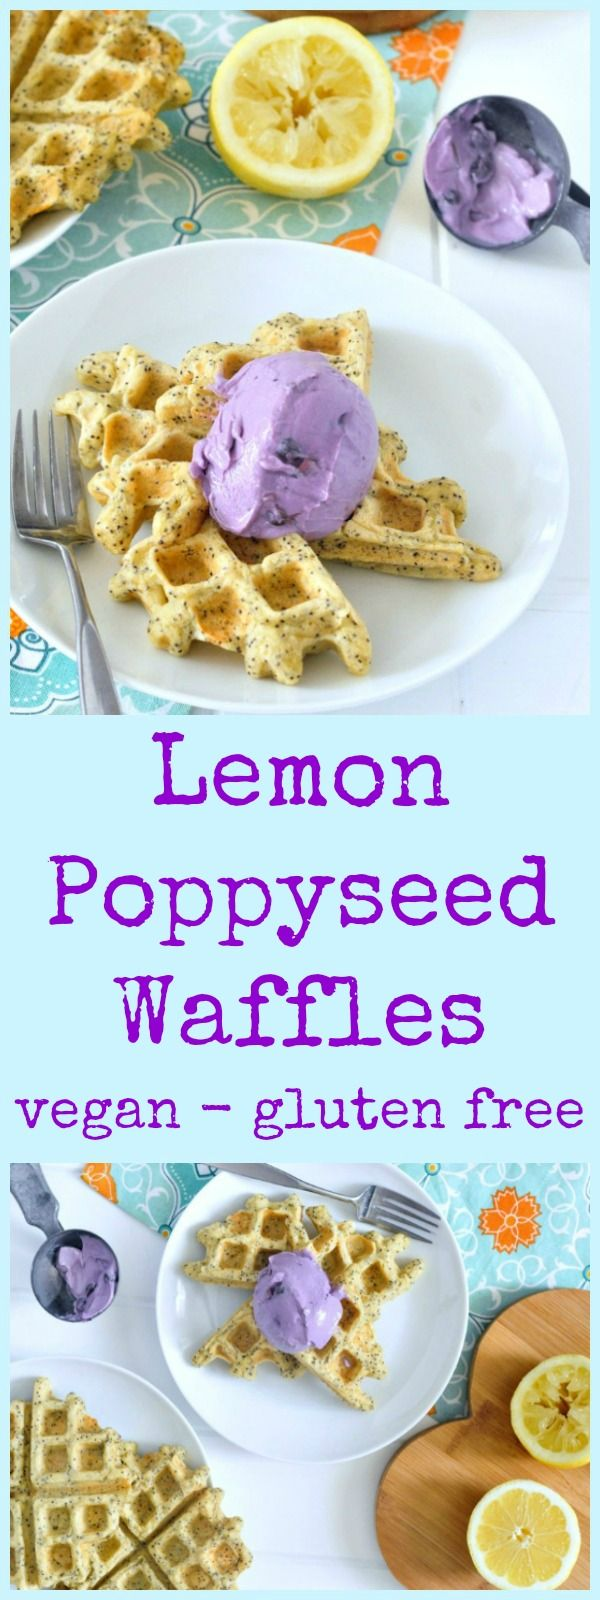 Lemon Poppyseed Waffles @spabettie #vegan #glutenfree